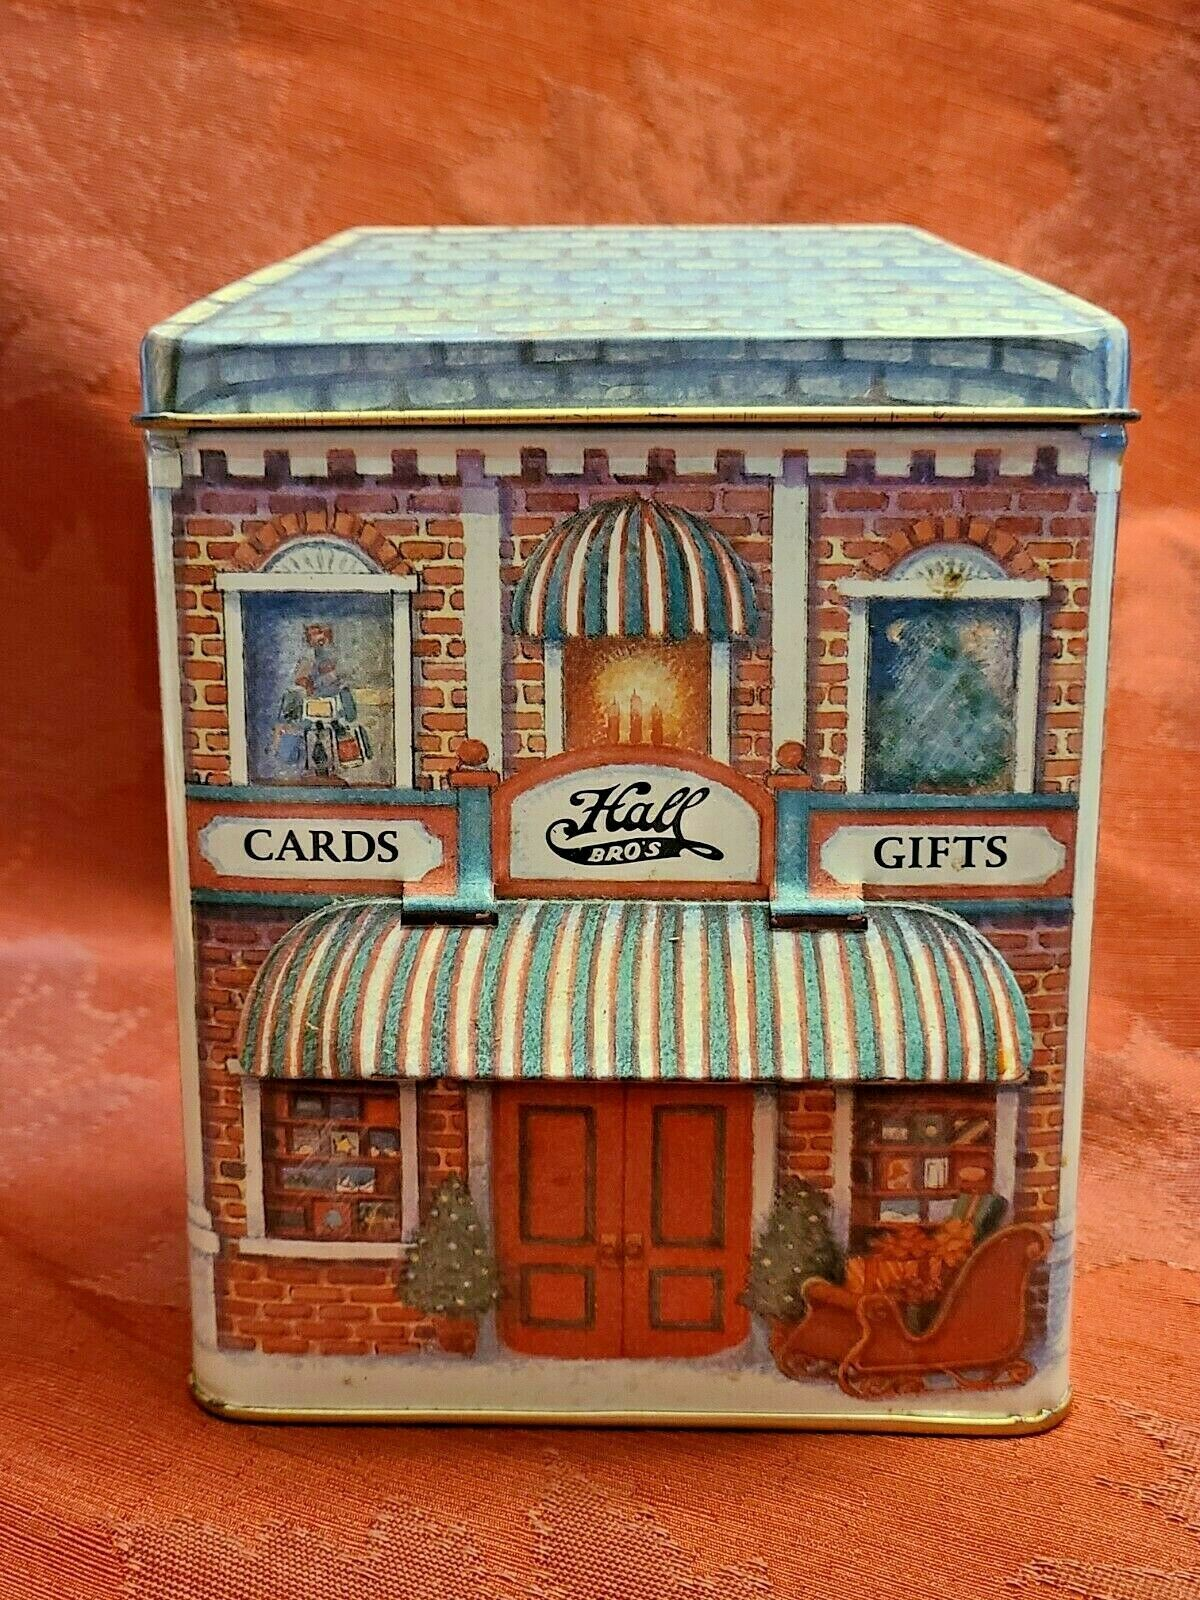 Hallmark Nostalgic Houses Hall Bro's Cards and Gifts Tin shop cards collection